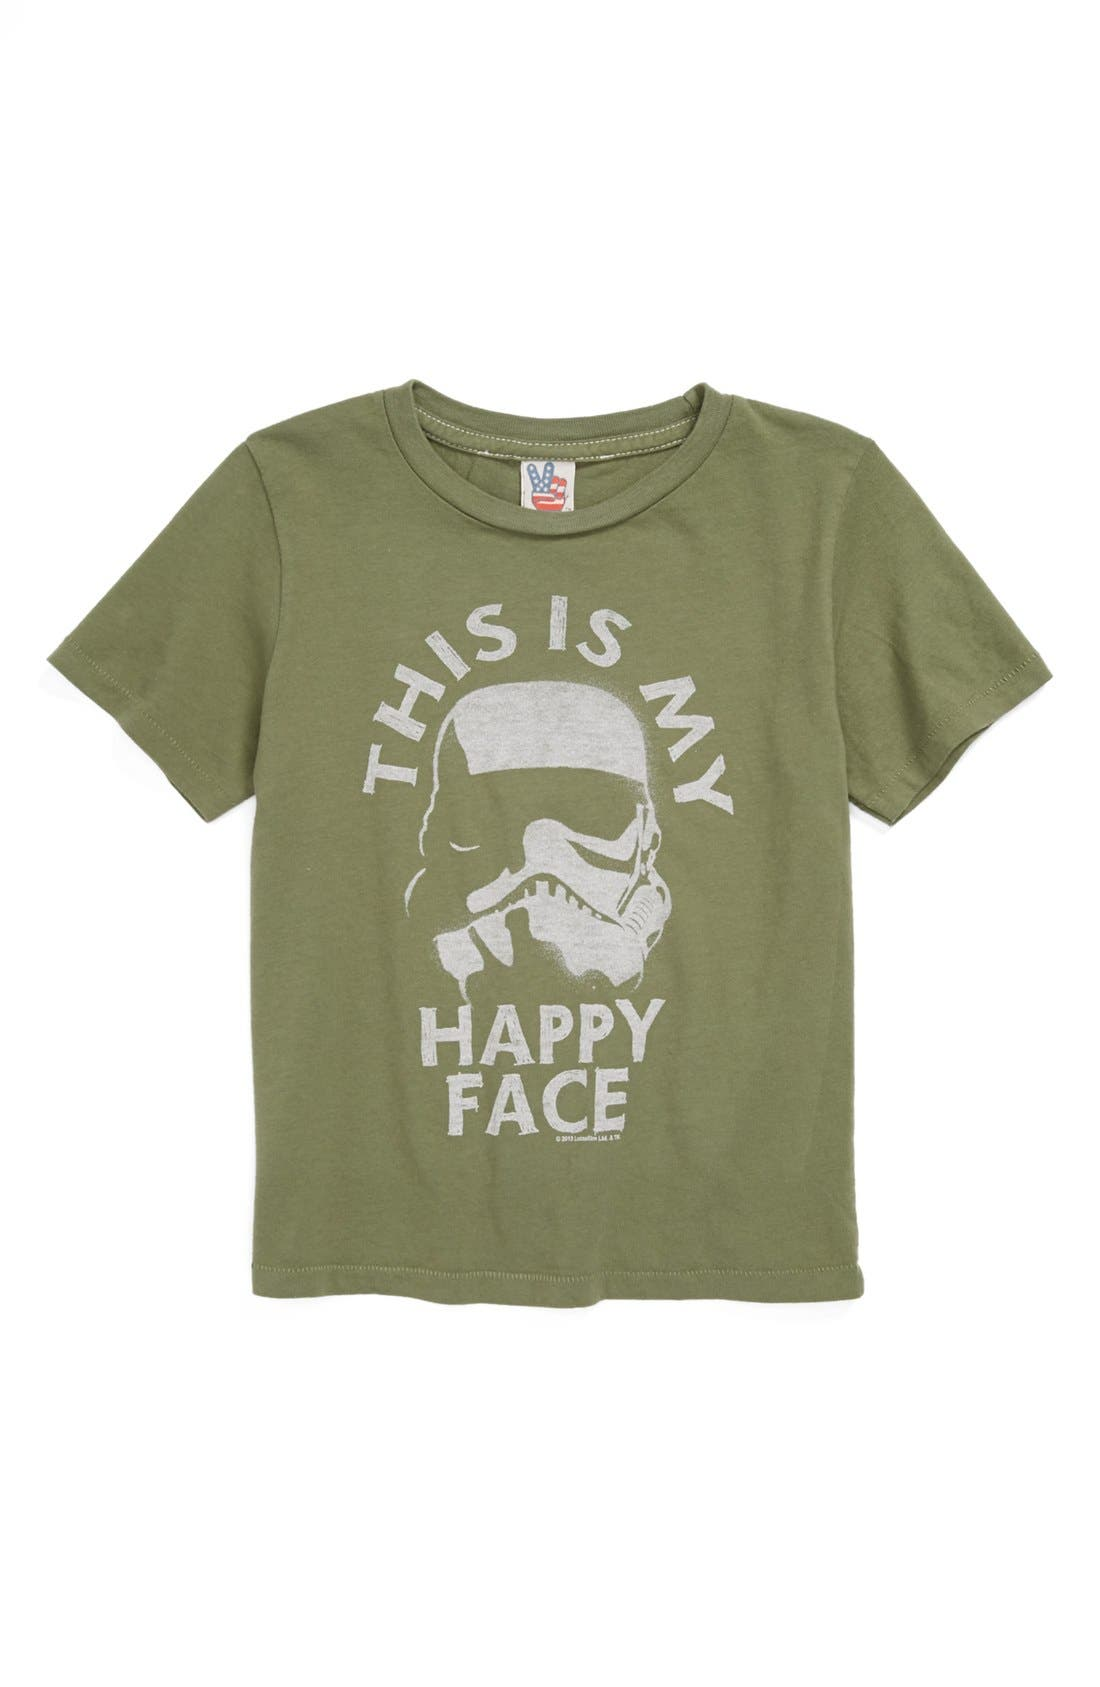 Alternate Image 1 Selected - Junk Food 'This Is My Happy Face' T-Shirt (Toddler Boys)